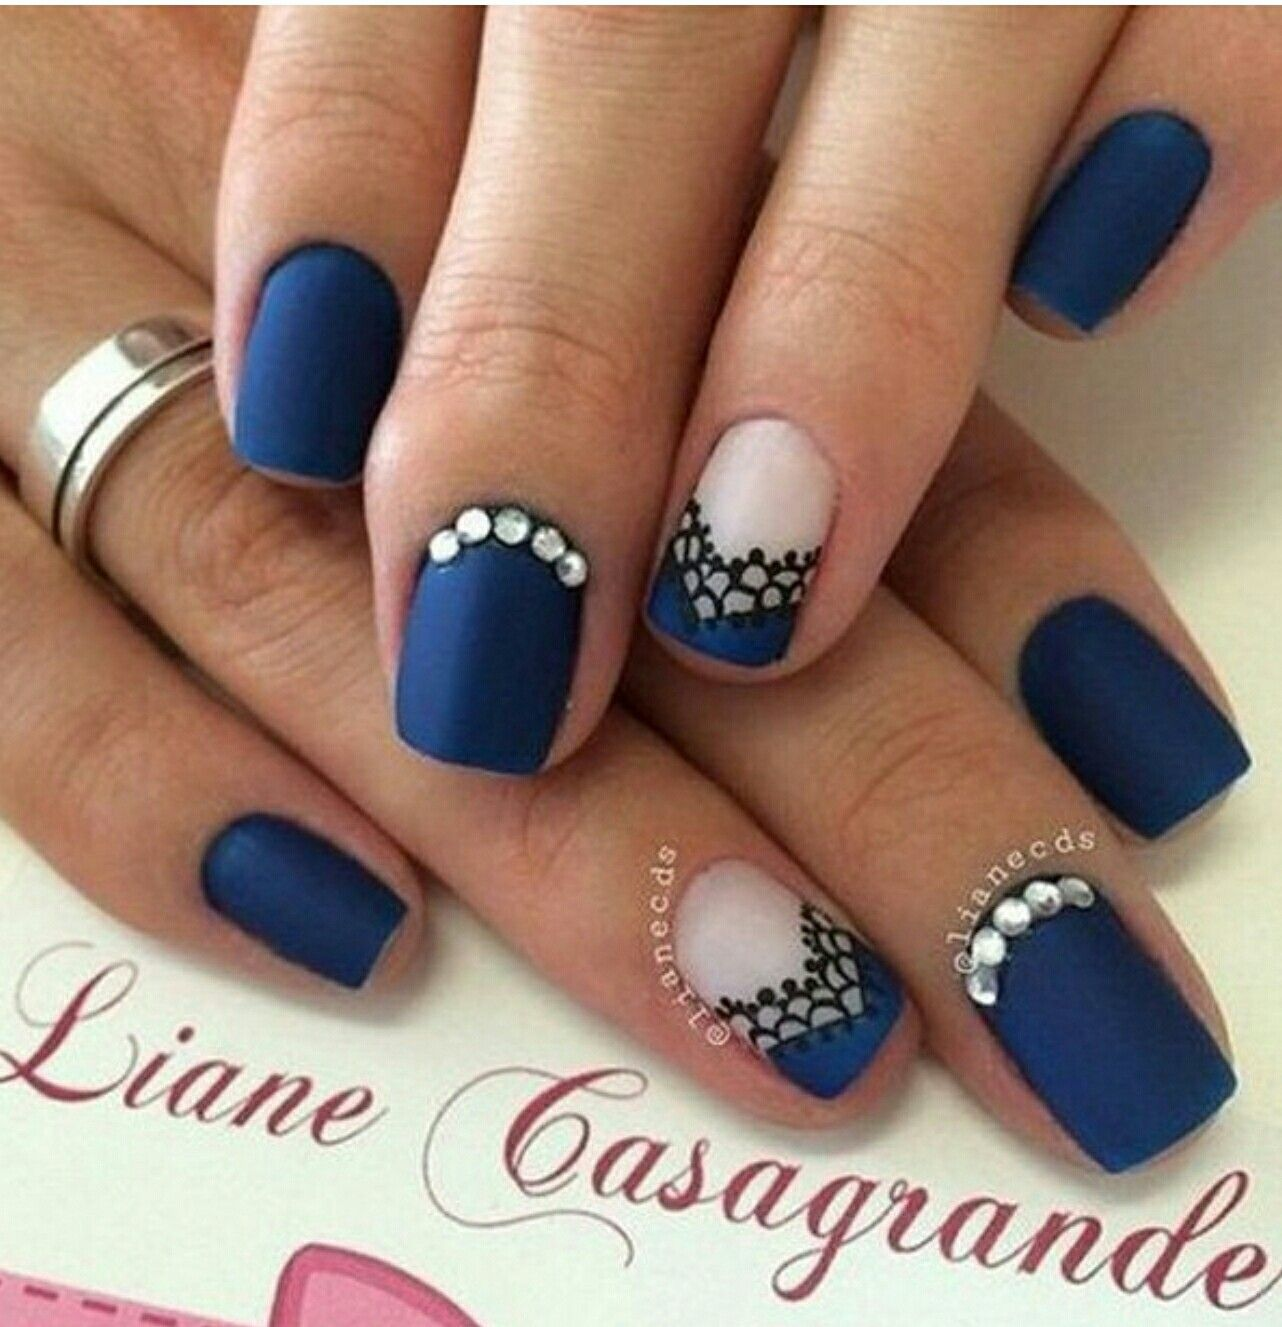 Pin by Courteney Greer on blue nail polish | Pinterest | Crazy nails ...